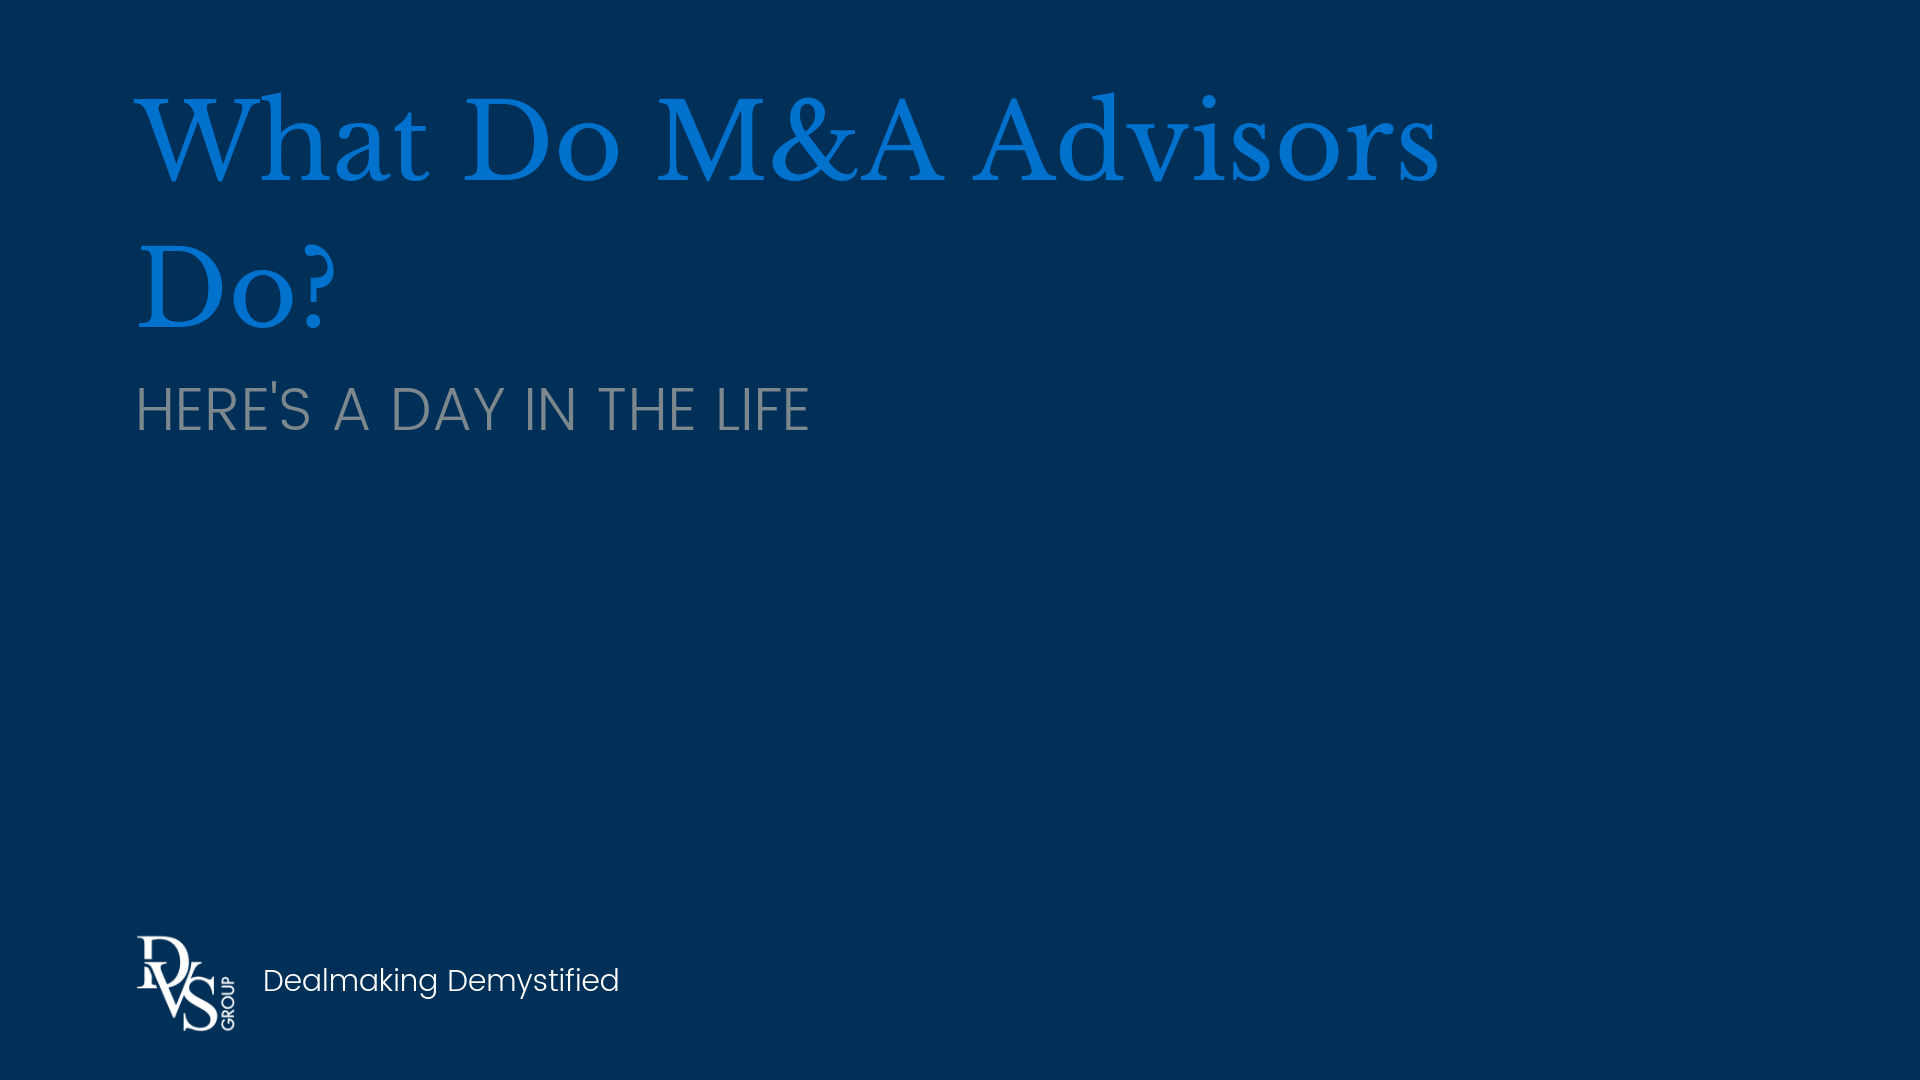 What Do M&A Advisors Do?